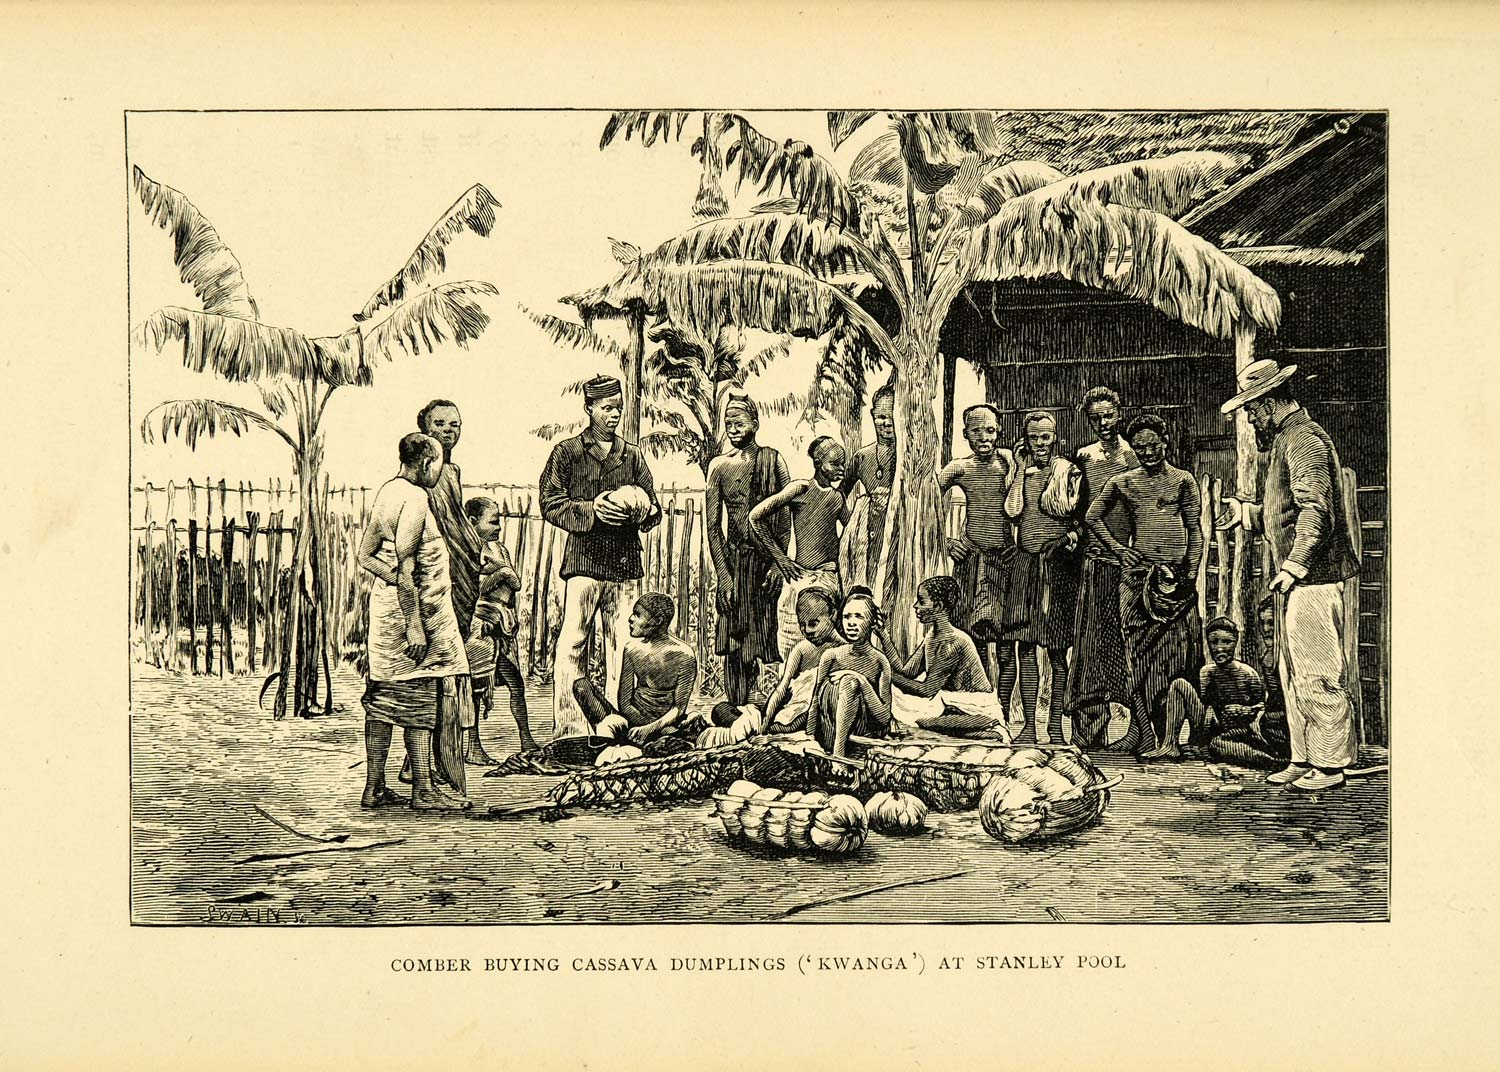 1900 Wood Engraving Comber Buying Cassava Dumplings Kwanga Stanley Pool XGC4